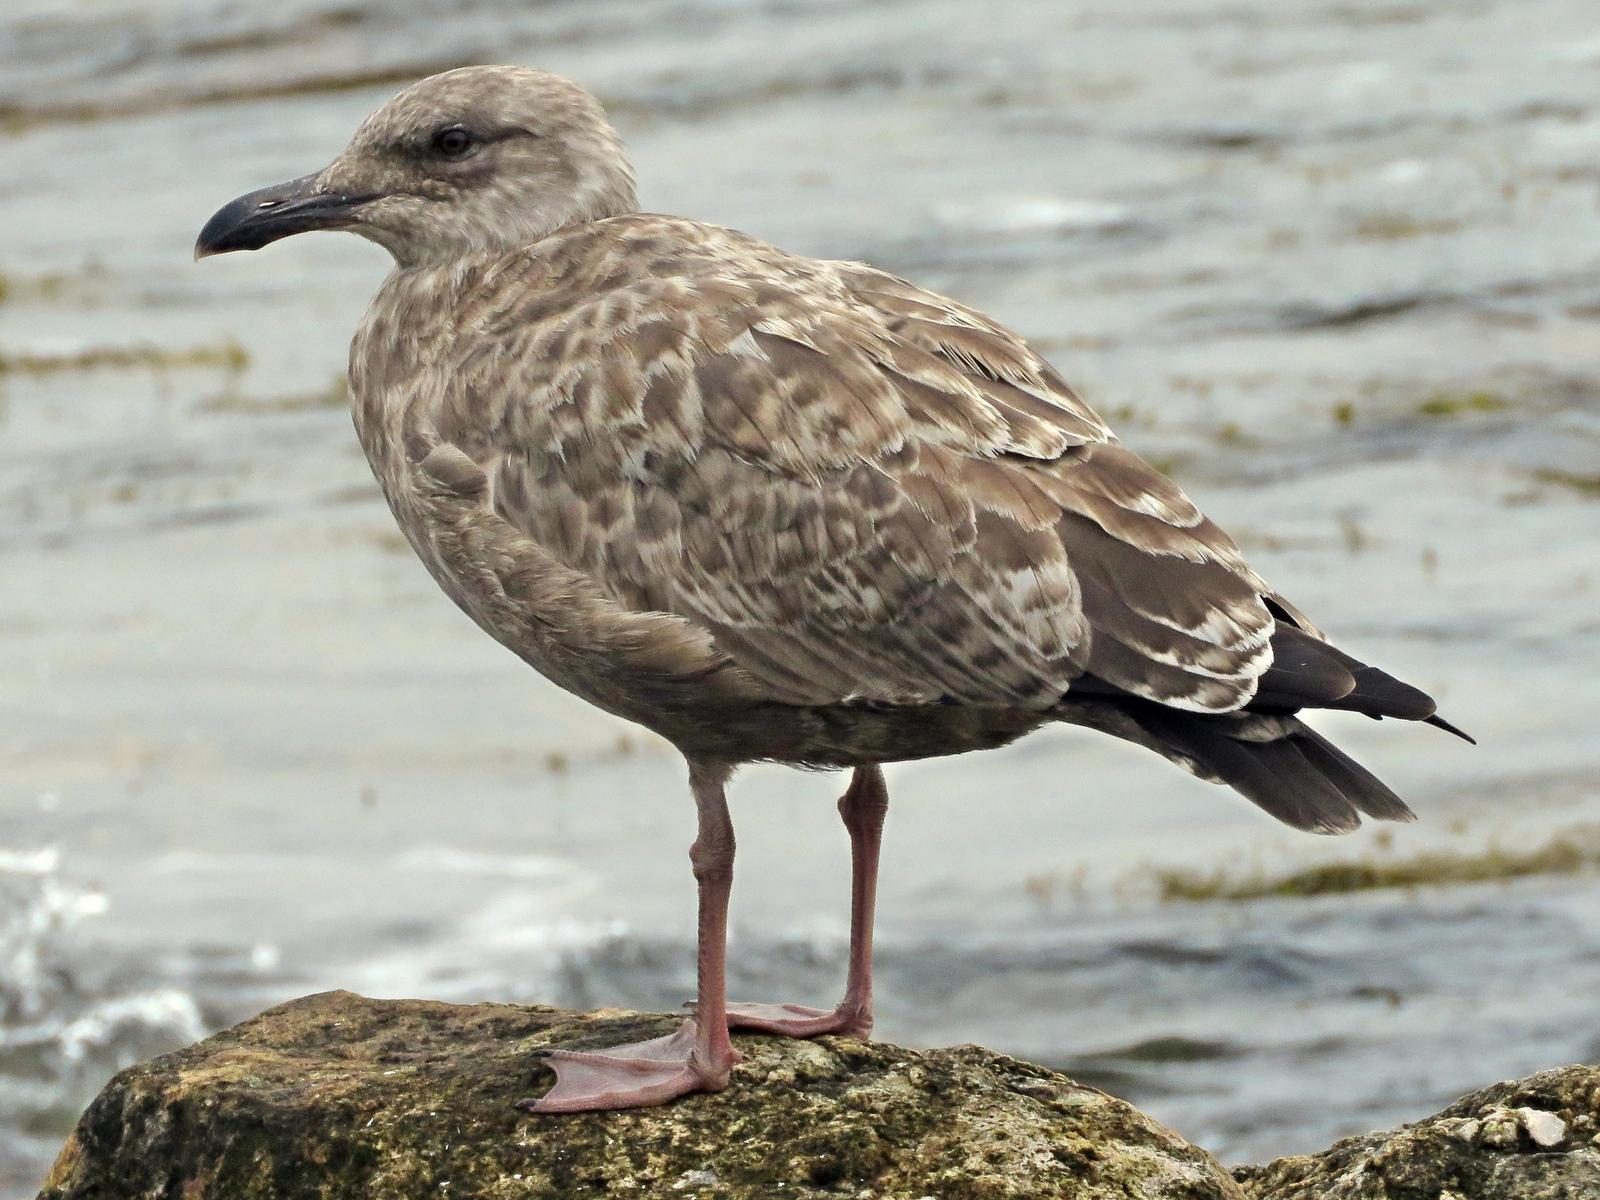 Herring Gull Photo by Bob Neugebauer